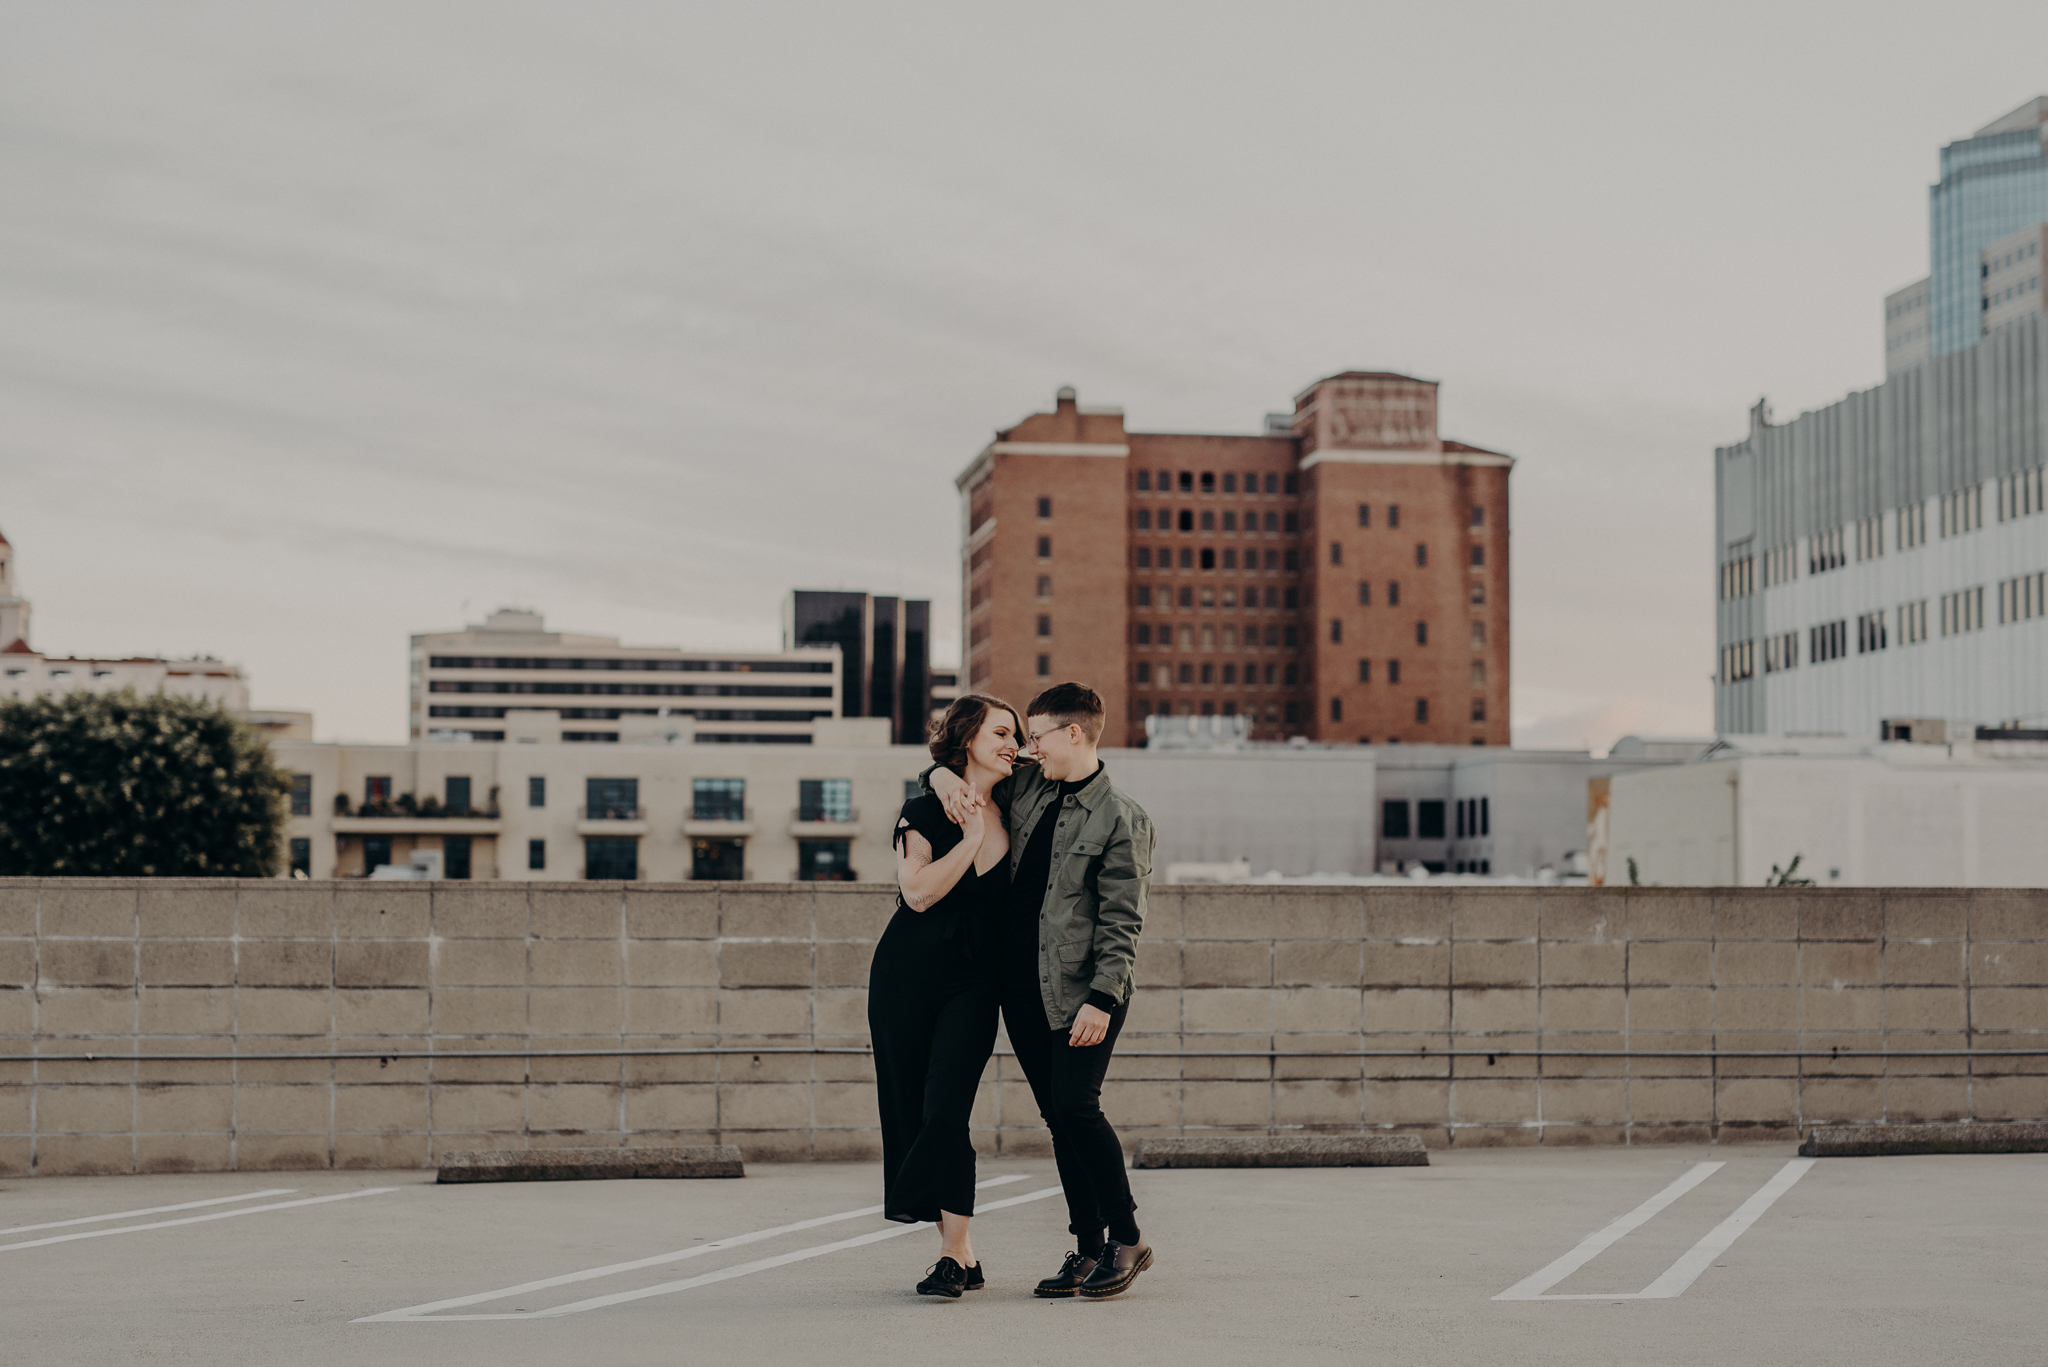 LGBTQ wedding photographer in los angeles - long beach engagement session - isaiahandtaylor.com-45.jpg